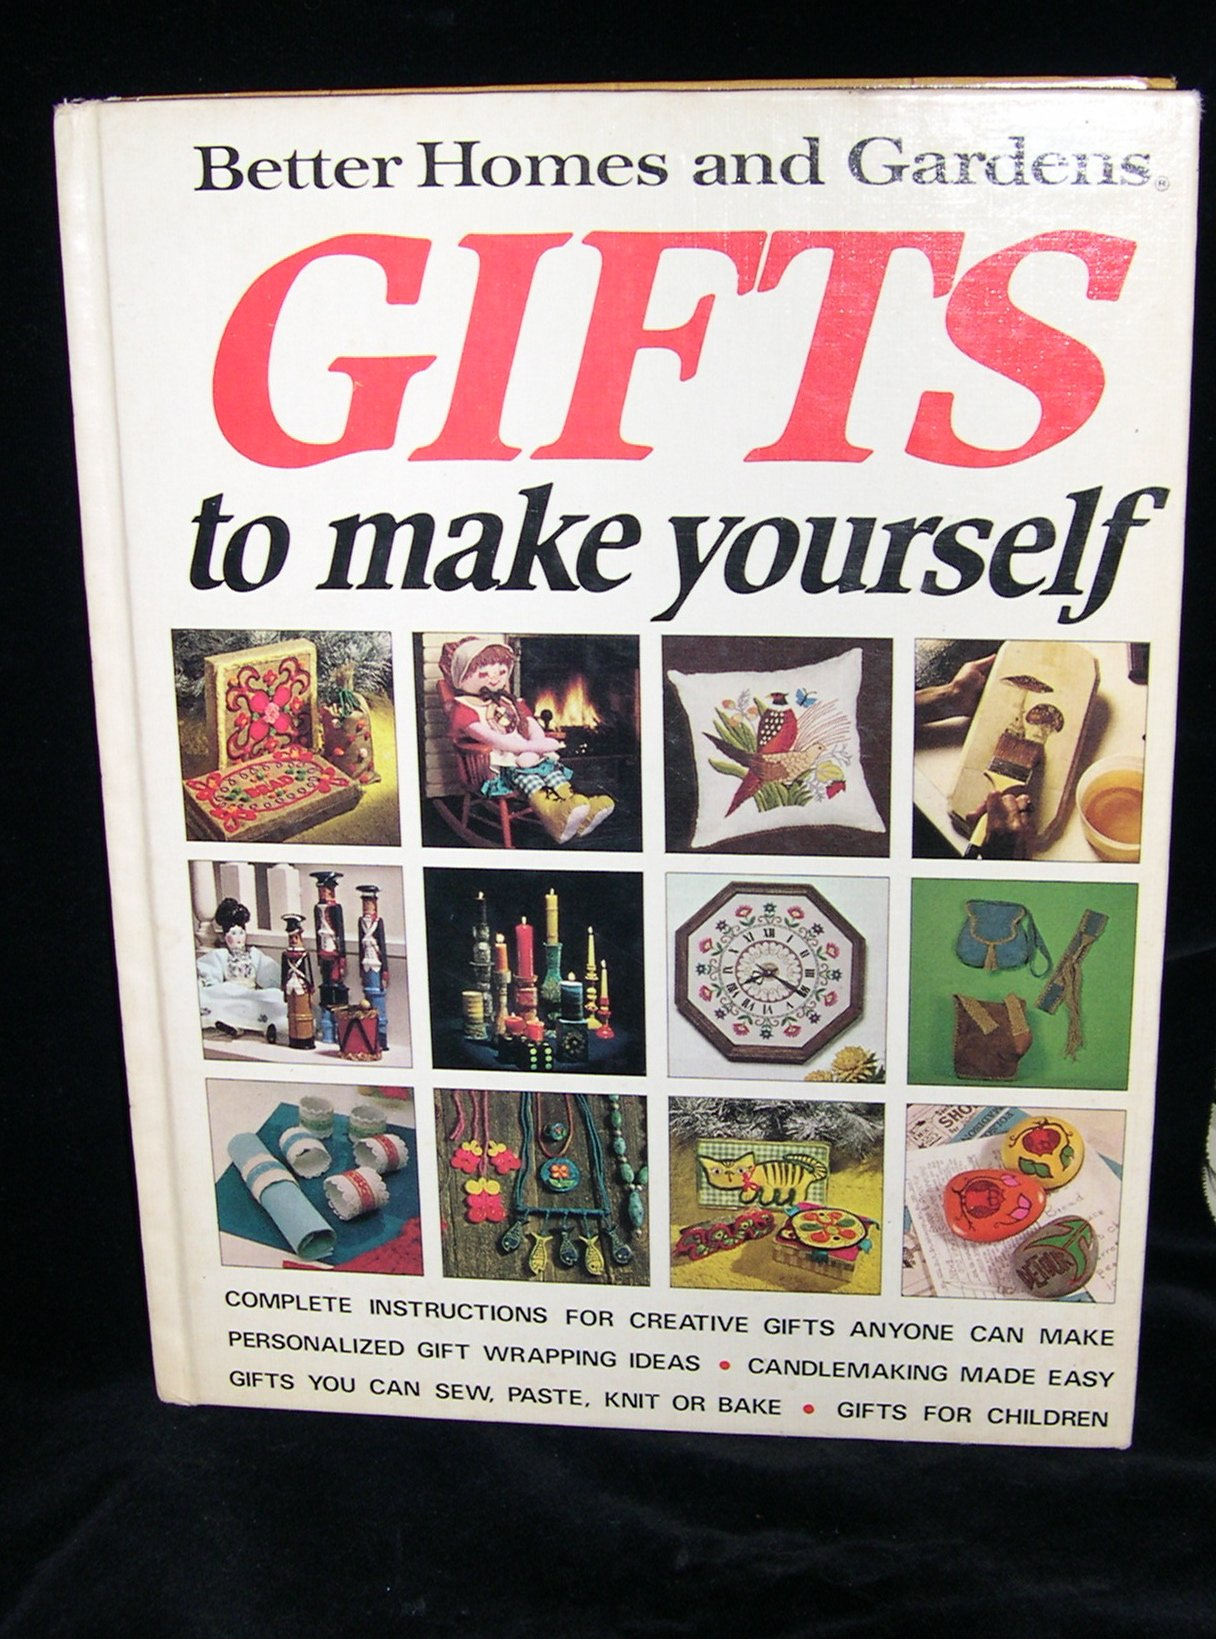 Better homes and gardens gifts to make yourself don dooley better homes and gardens gifts to make yourself don dooley 9780696006005 amazon books solutioingenieria Gallery